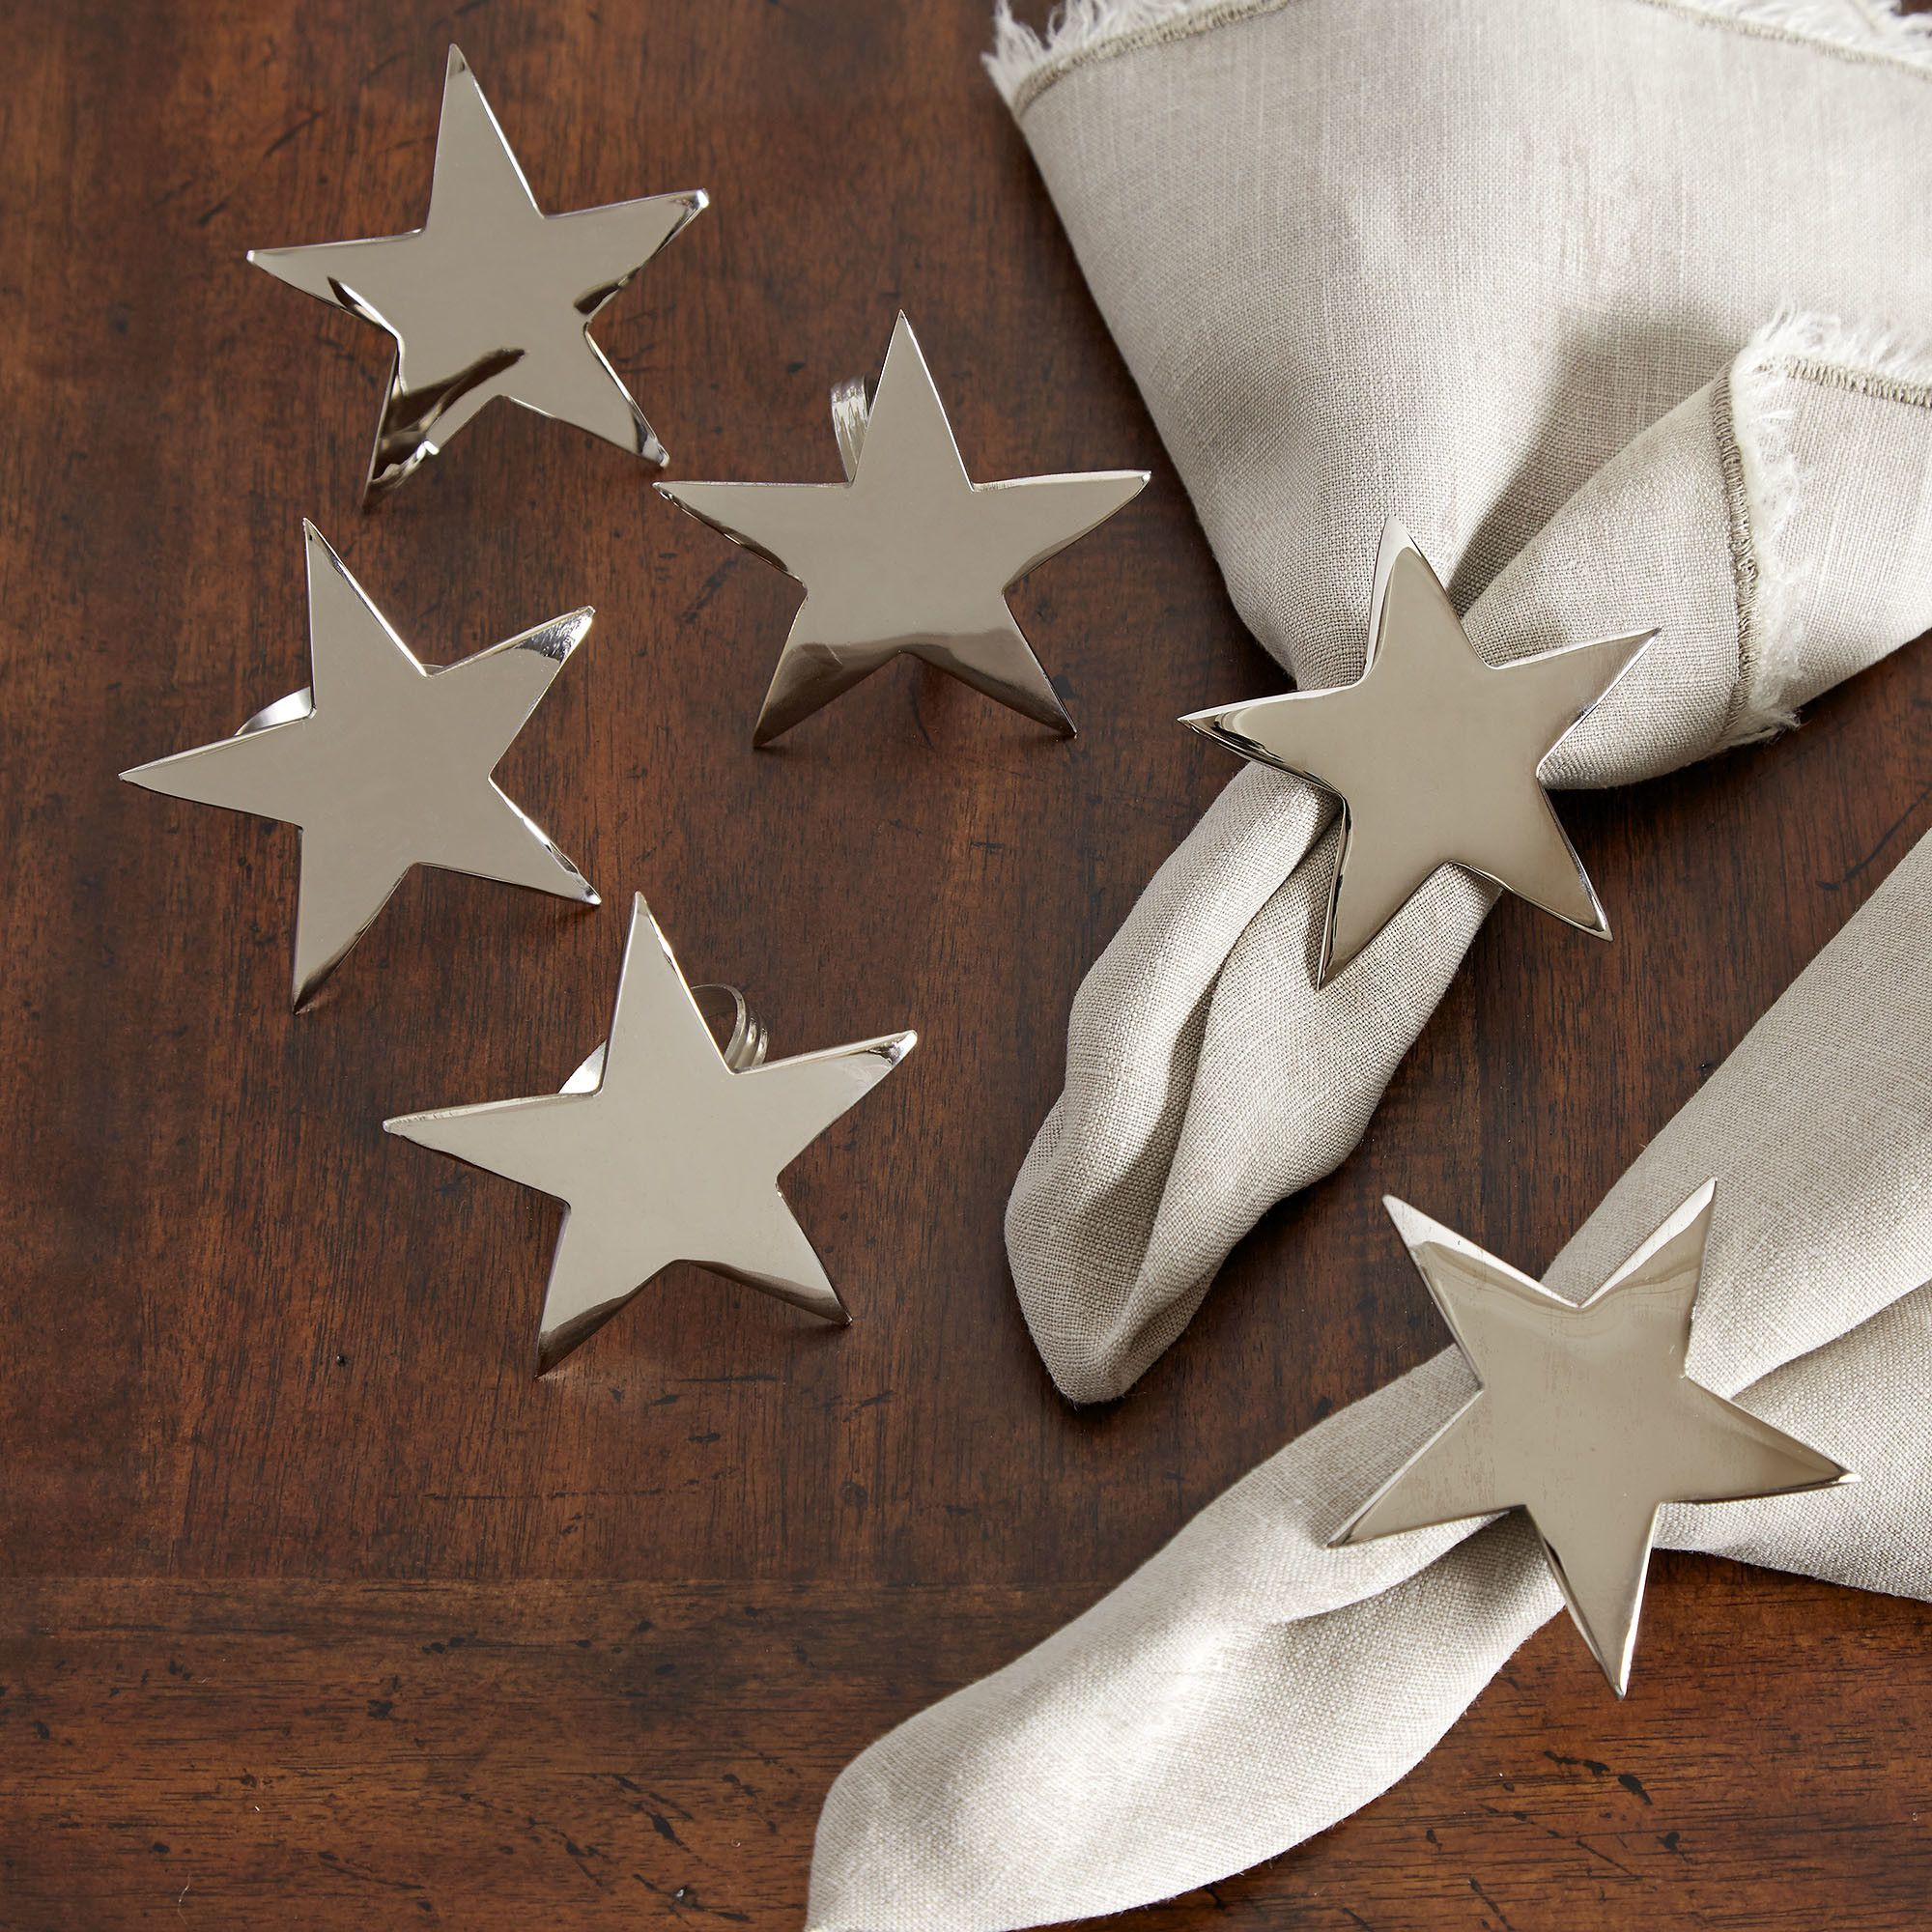 Star Napkin Rings Simple and versatile